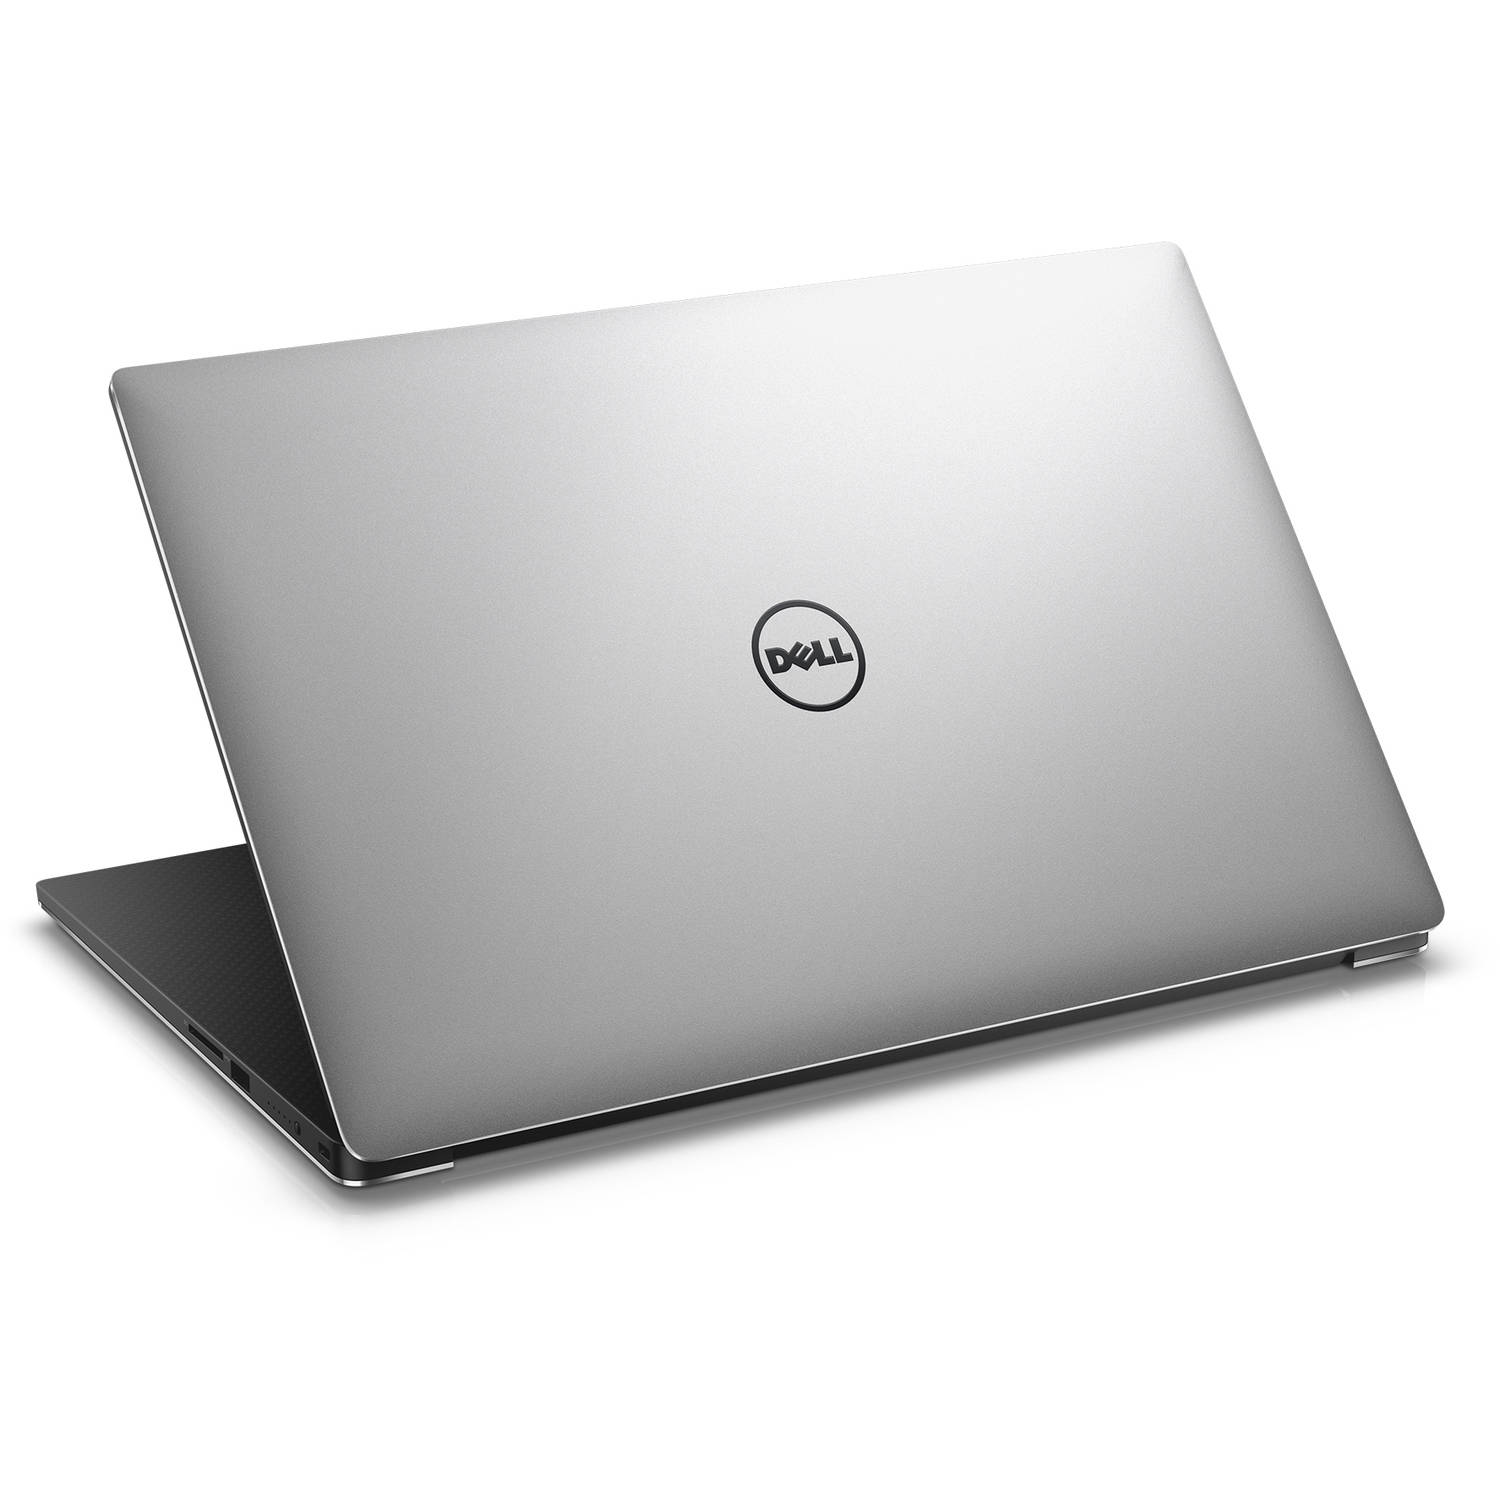 "Dell Machined Aluminum/Silver 15.6"" XPS 15 9550 Laptop PC with Intel Core i5-6300"